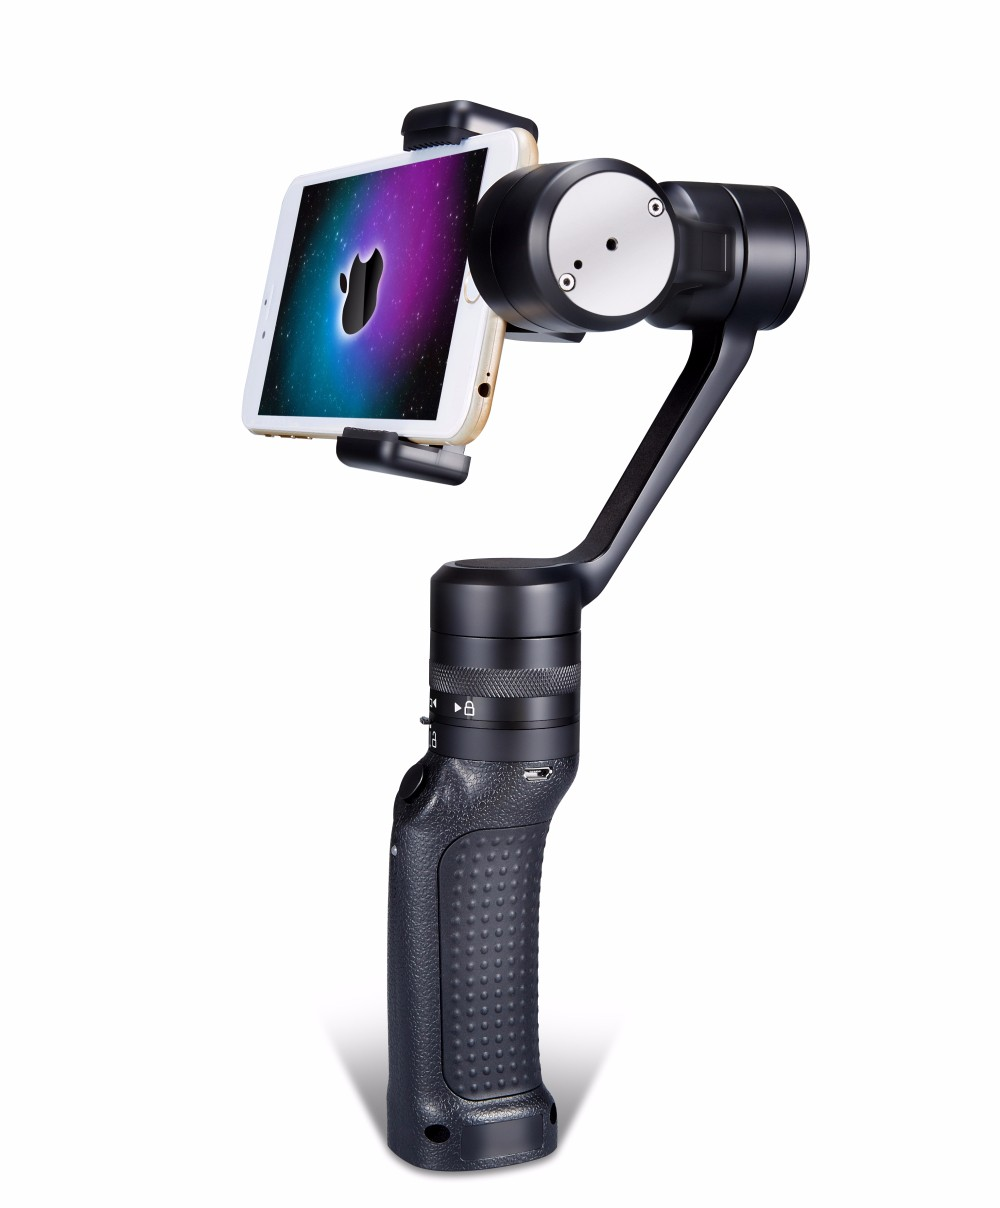 Wewow P3 3 Axis Handheld Brushless Stabilizer Gimbal PTZ for Smart Phones Iphone FPV Photograpphy F19363 2015 hot sale quadcopter 3 axis gimbal brushless ptz dys w 4108 motor evvgc controller for nex ildc camera